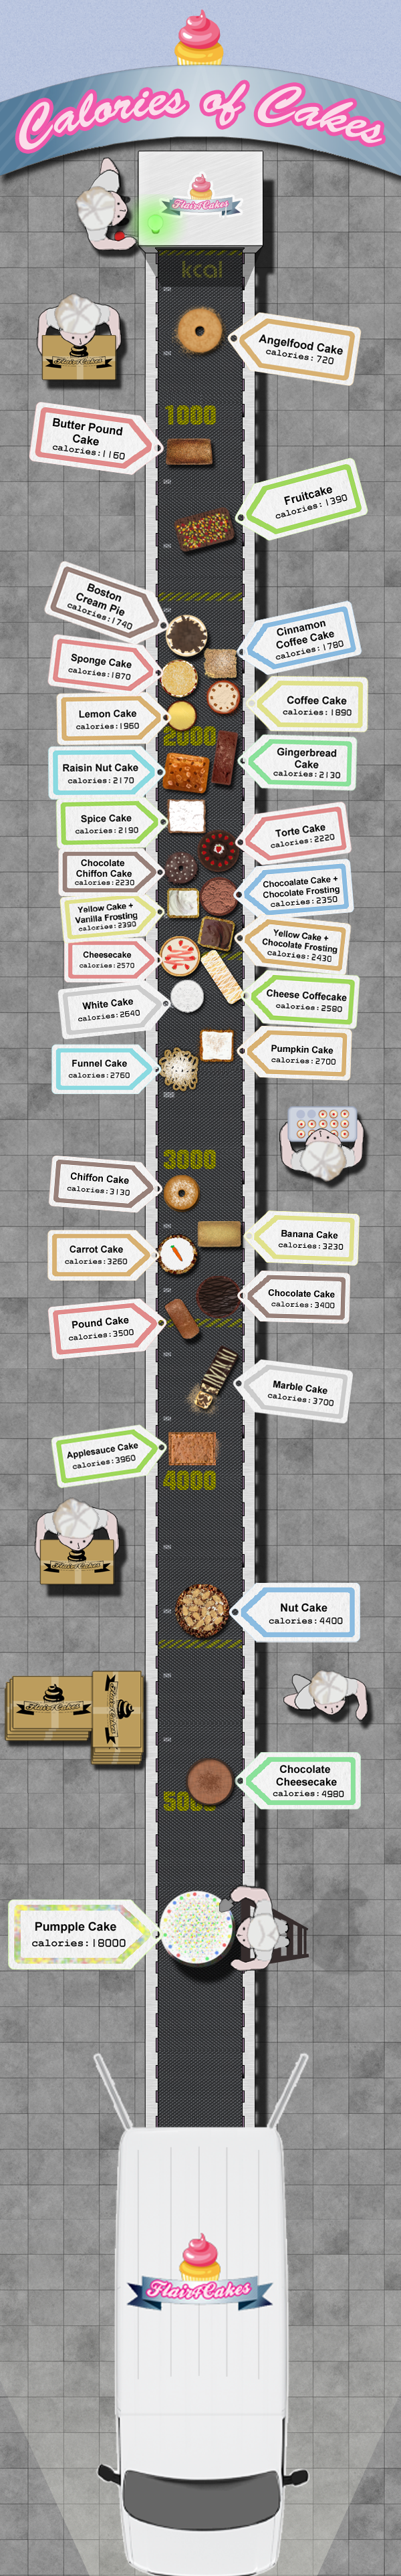 calories of cakes infographic